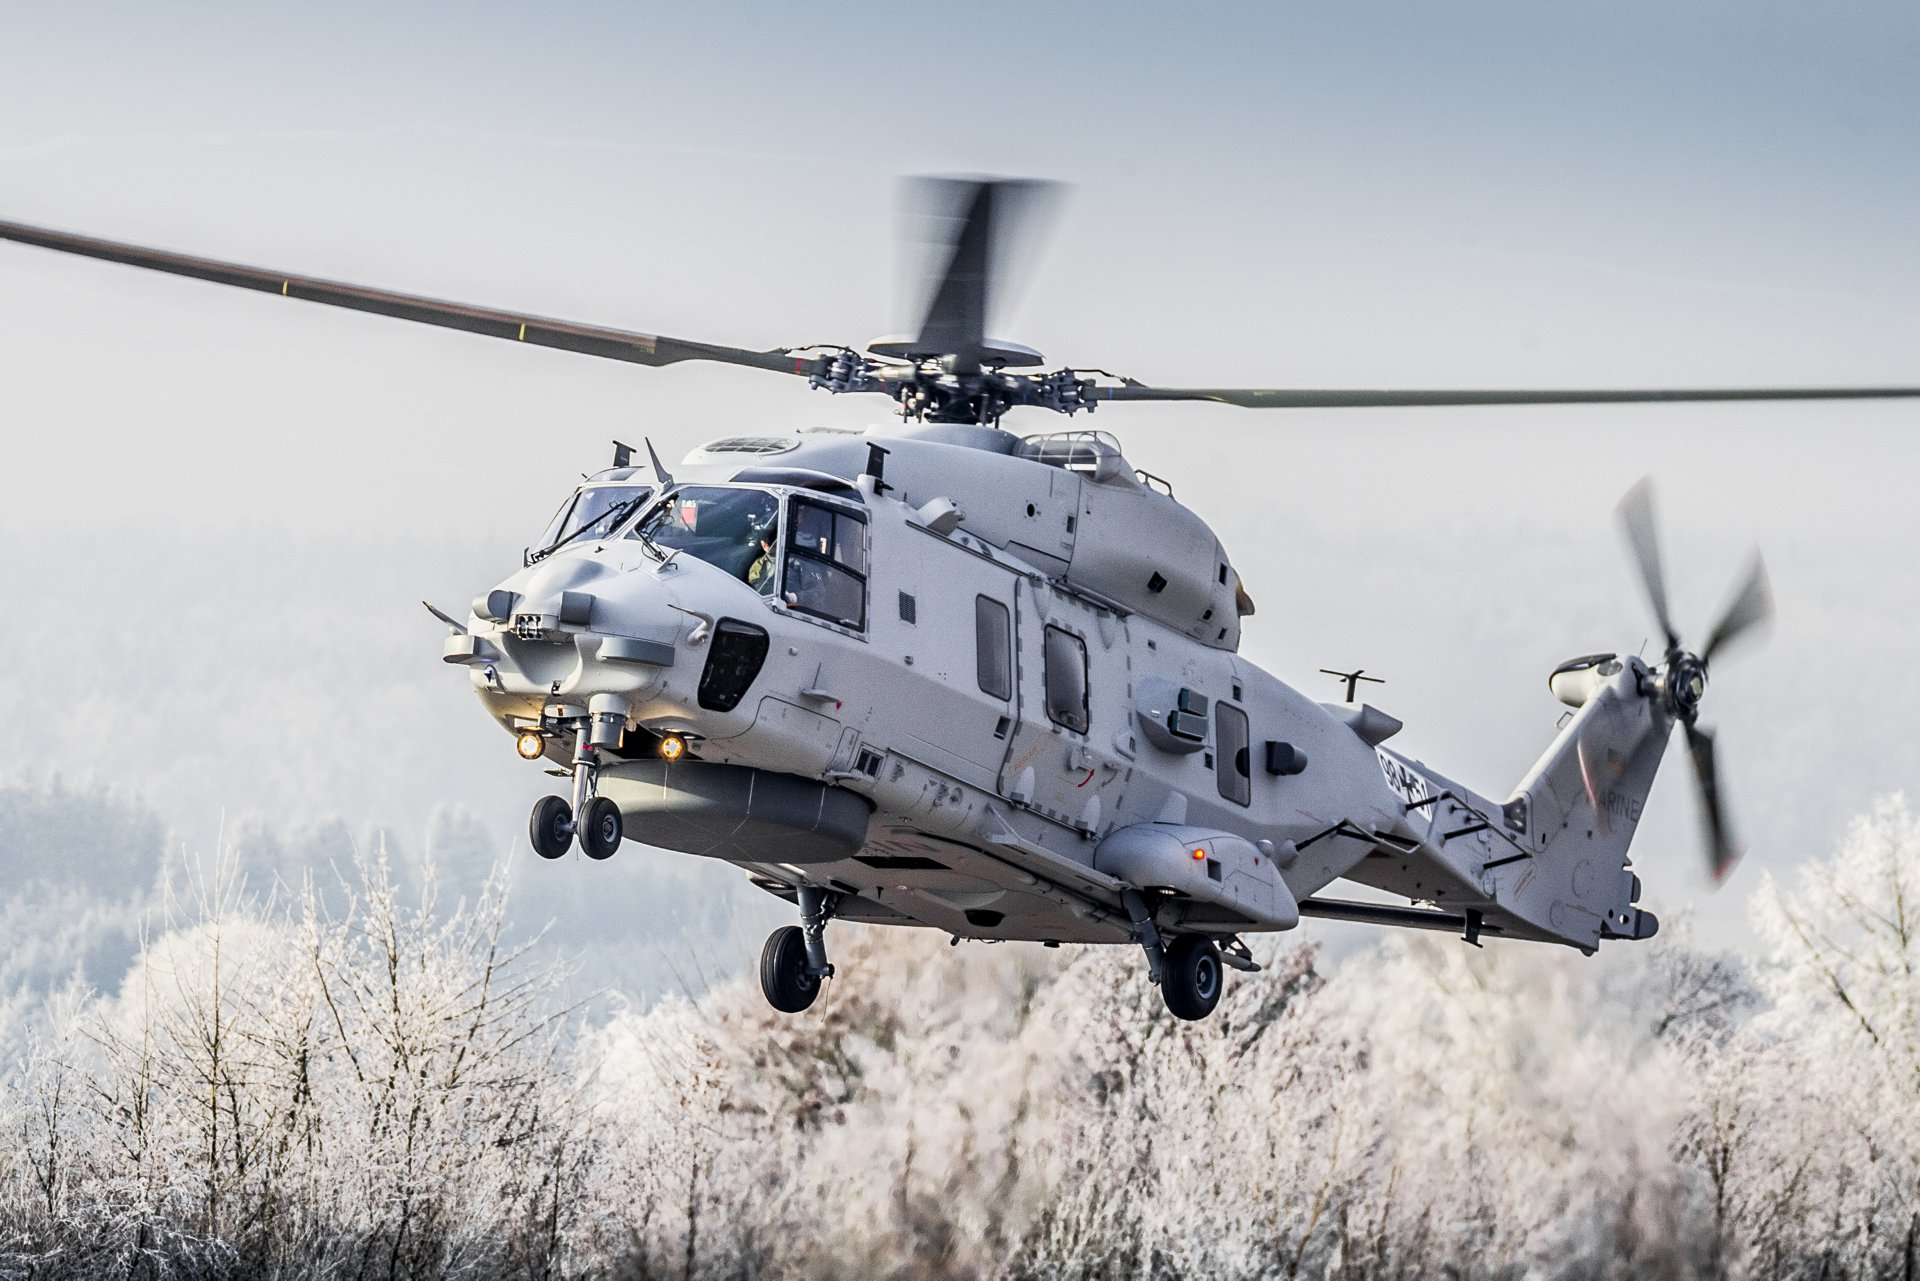 The NH90 Sea Lion naval multi-role helicopter took off on its on-schedule maiden flight at Airbus Helicopters in Donauwörth